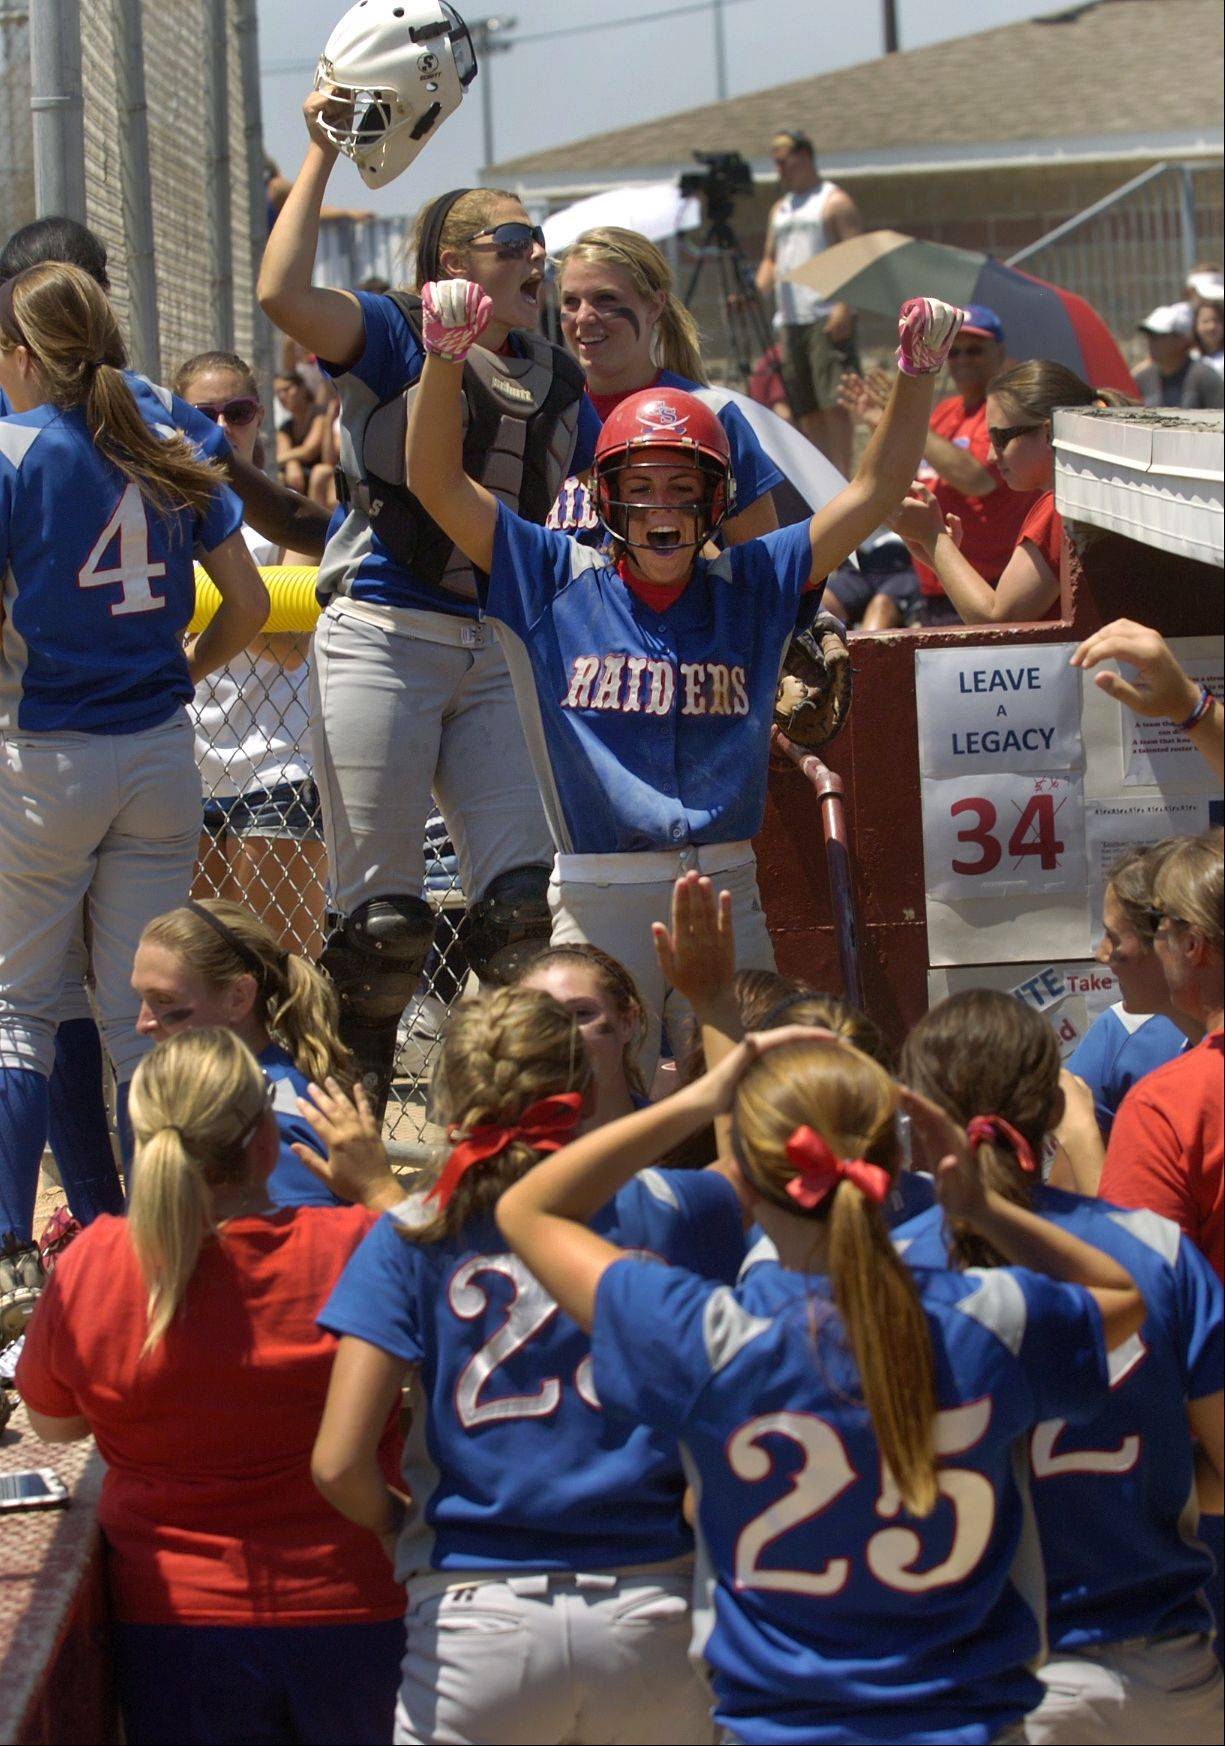 Glenbard South celebrates after putting 2 runs on the board in the fourth inning of the Class 3A softball state final.